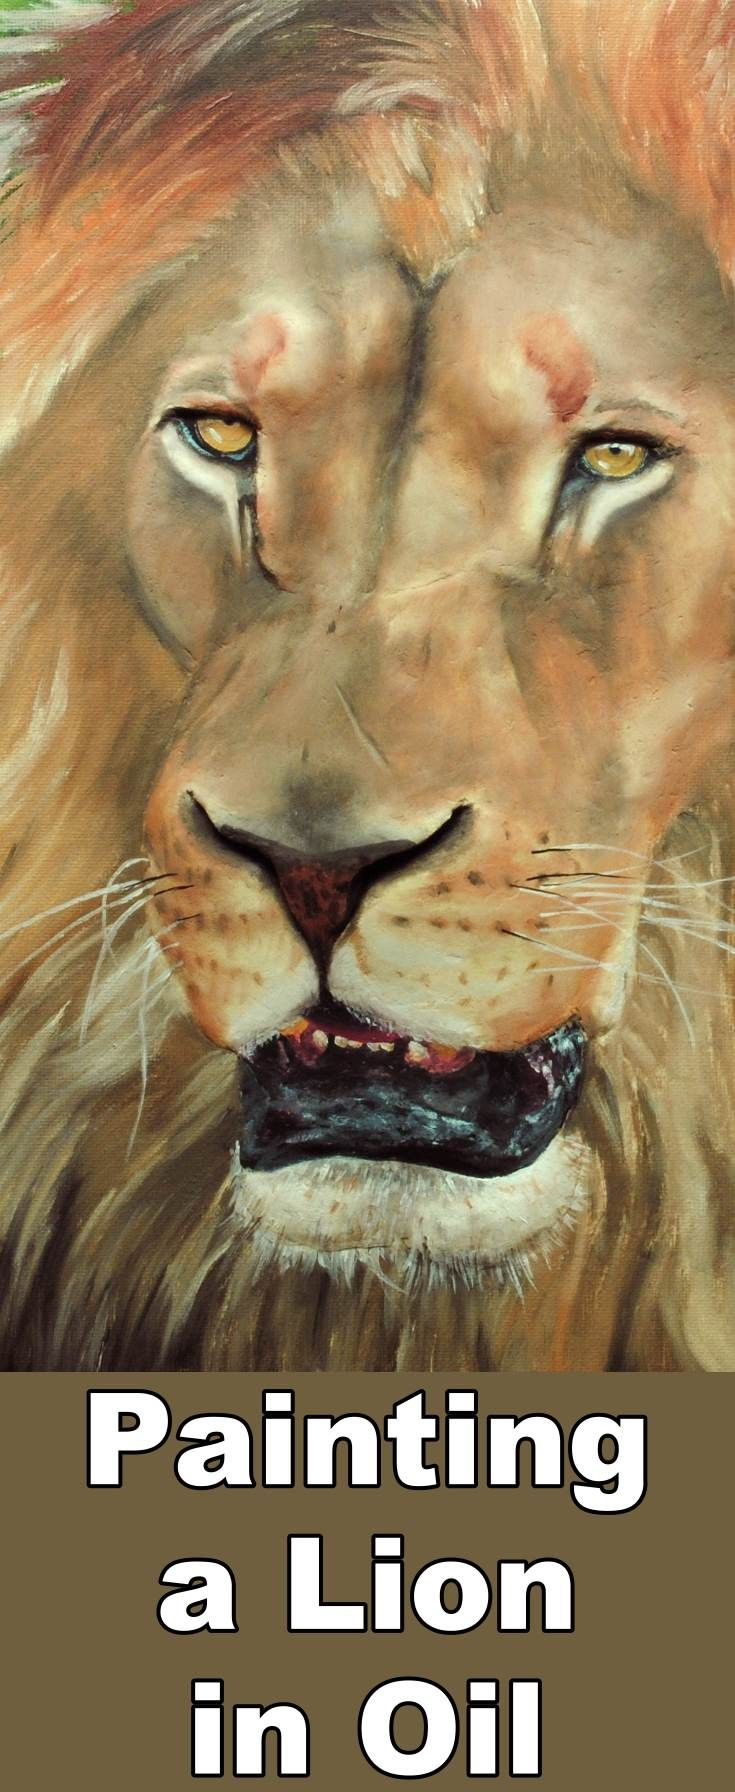 17 beste afbeeldingen over tutorials oilpainting op for Learn to paint with oils for free